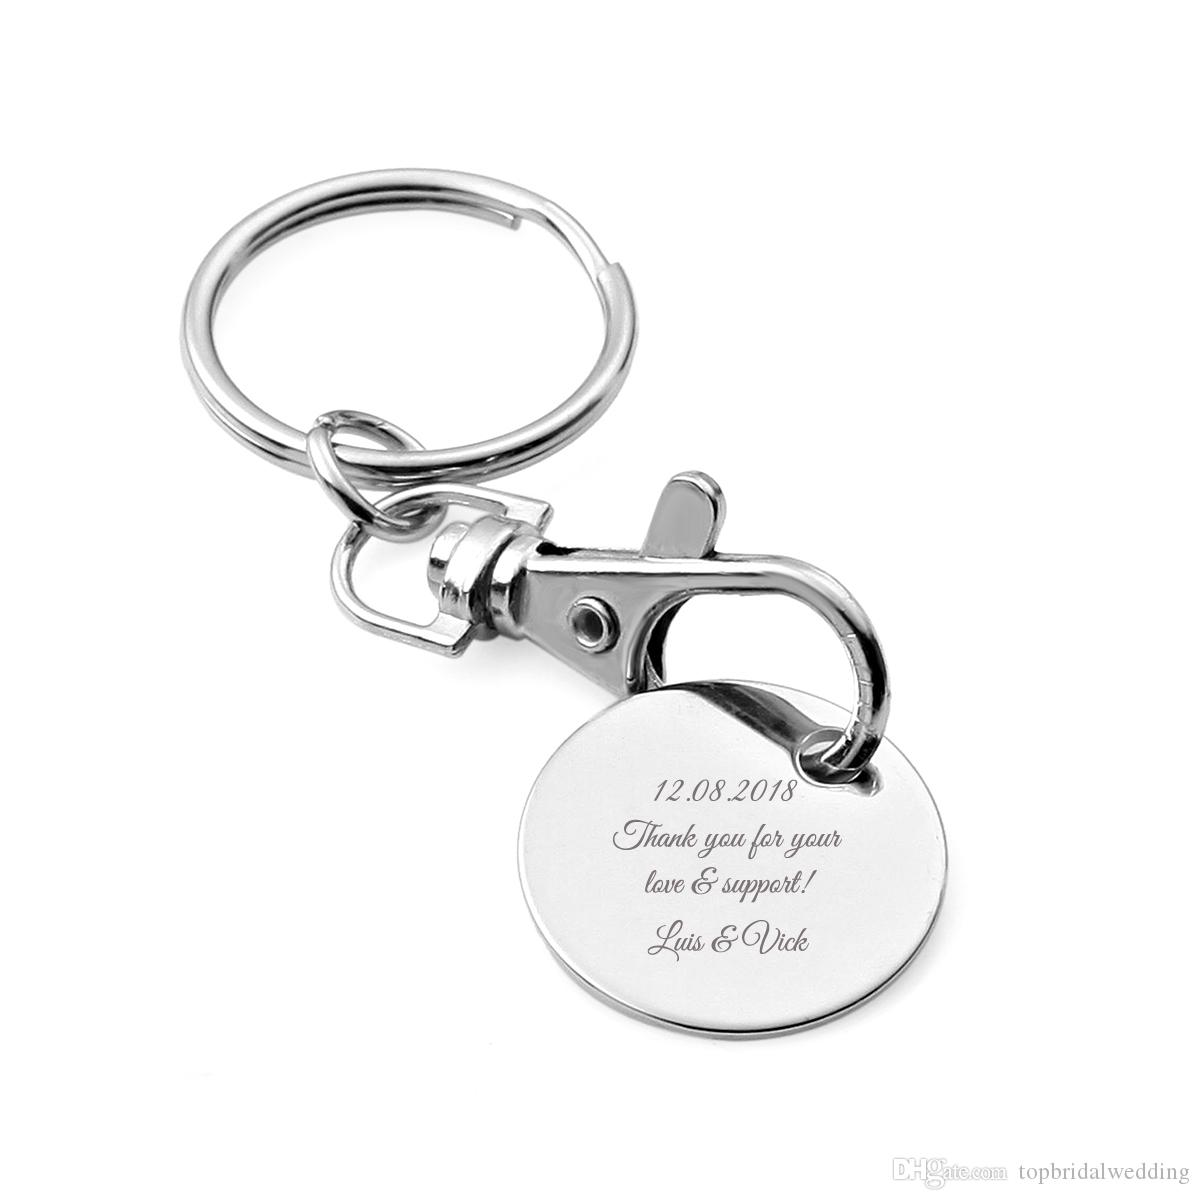 Personalized Wedding Gift For Guests,Custom Keychain Wedding Favor ...